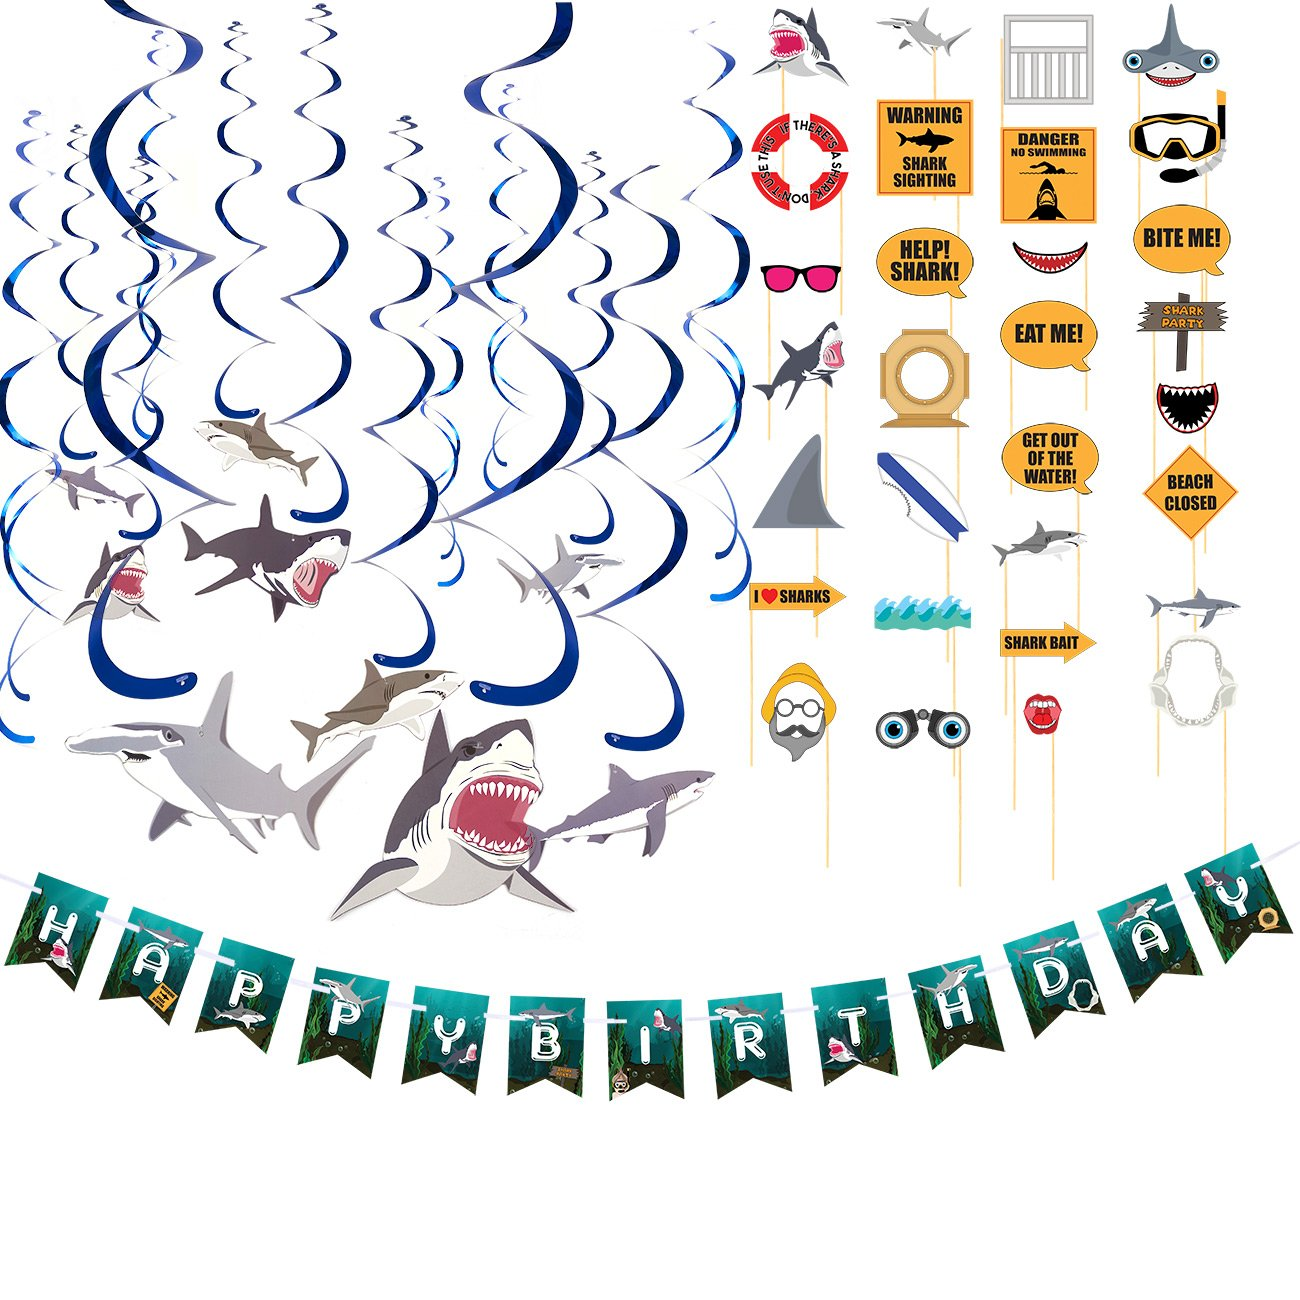 Blue Panda Happy Birthday Decorations – Shark Party Decorations, Includes 1 Birthday Banner, 15-Count Swirl Decorations, 21-Count Photo Booth Props, 3-in-1 Pack Happy Birthday Party Supplies by Blue Panda